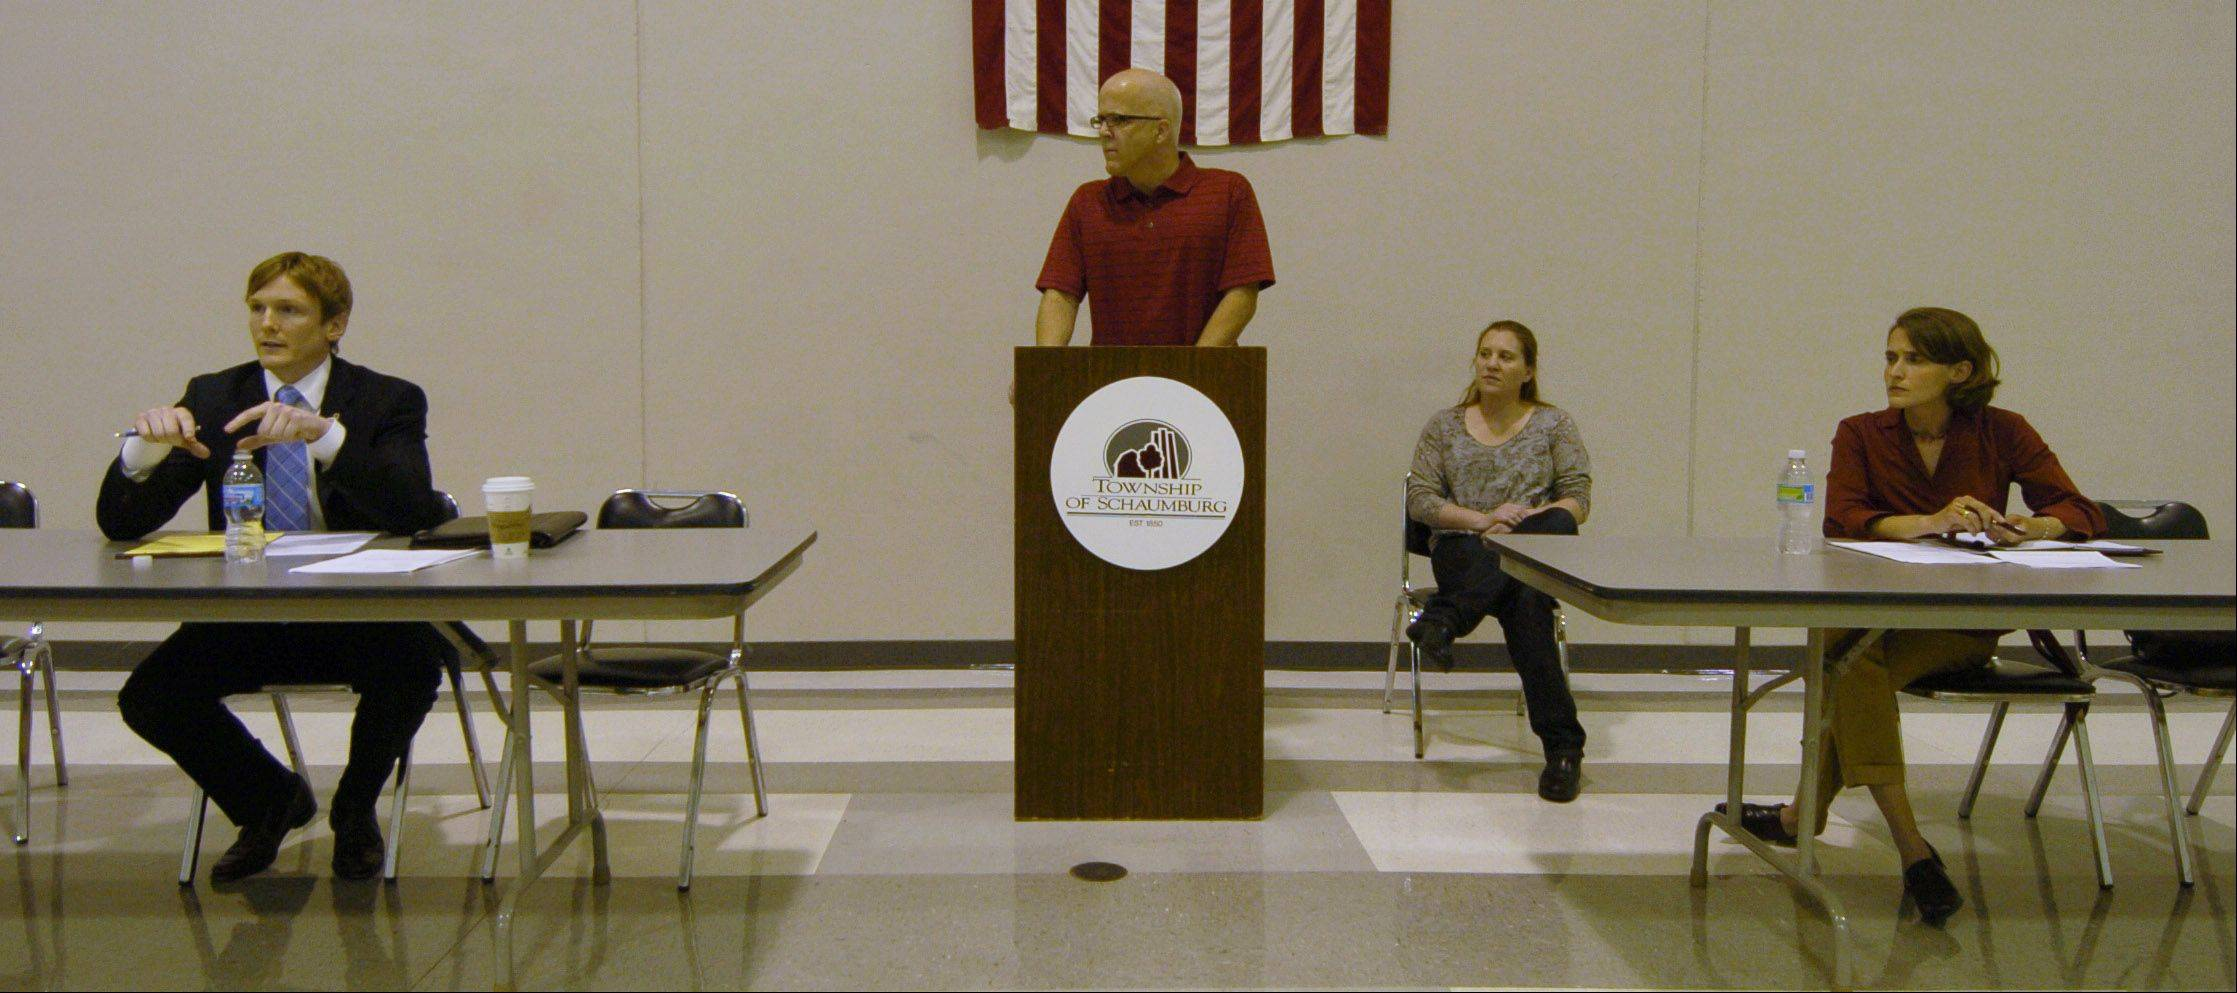 Mike Baker, behind the podium, organized this forum in 2010 for legislative candidates Ryan Higgins, left, and Michelle Mussman, far right, to discuss their commitment to state funding for special needs families. In the back is Amy Bolas, of the Autism Society of America.